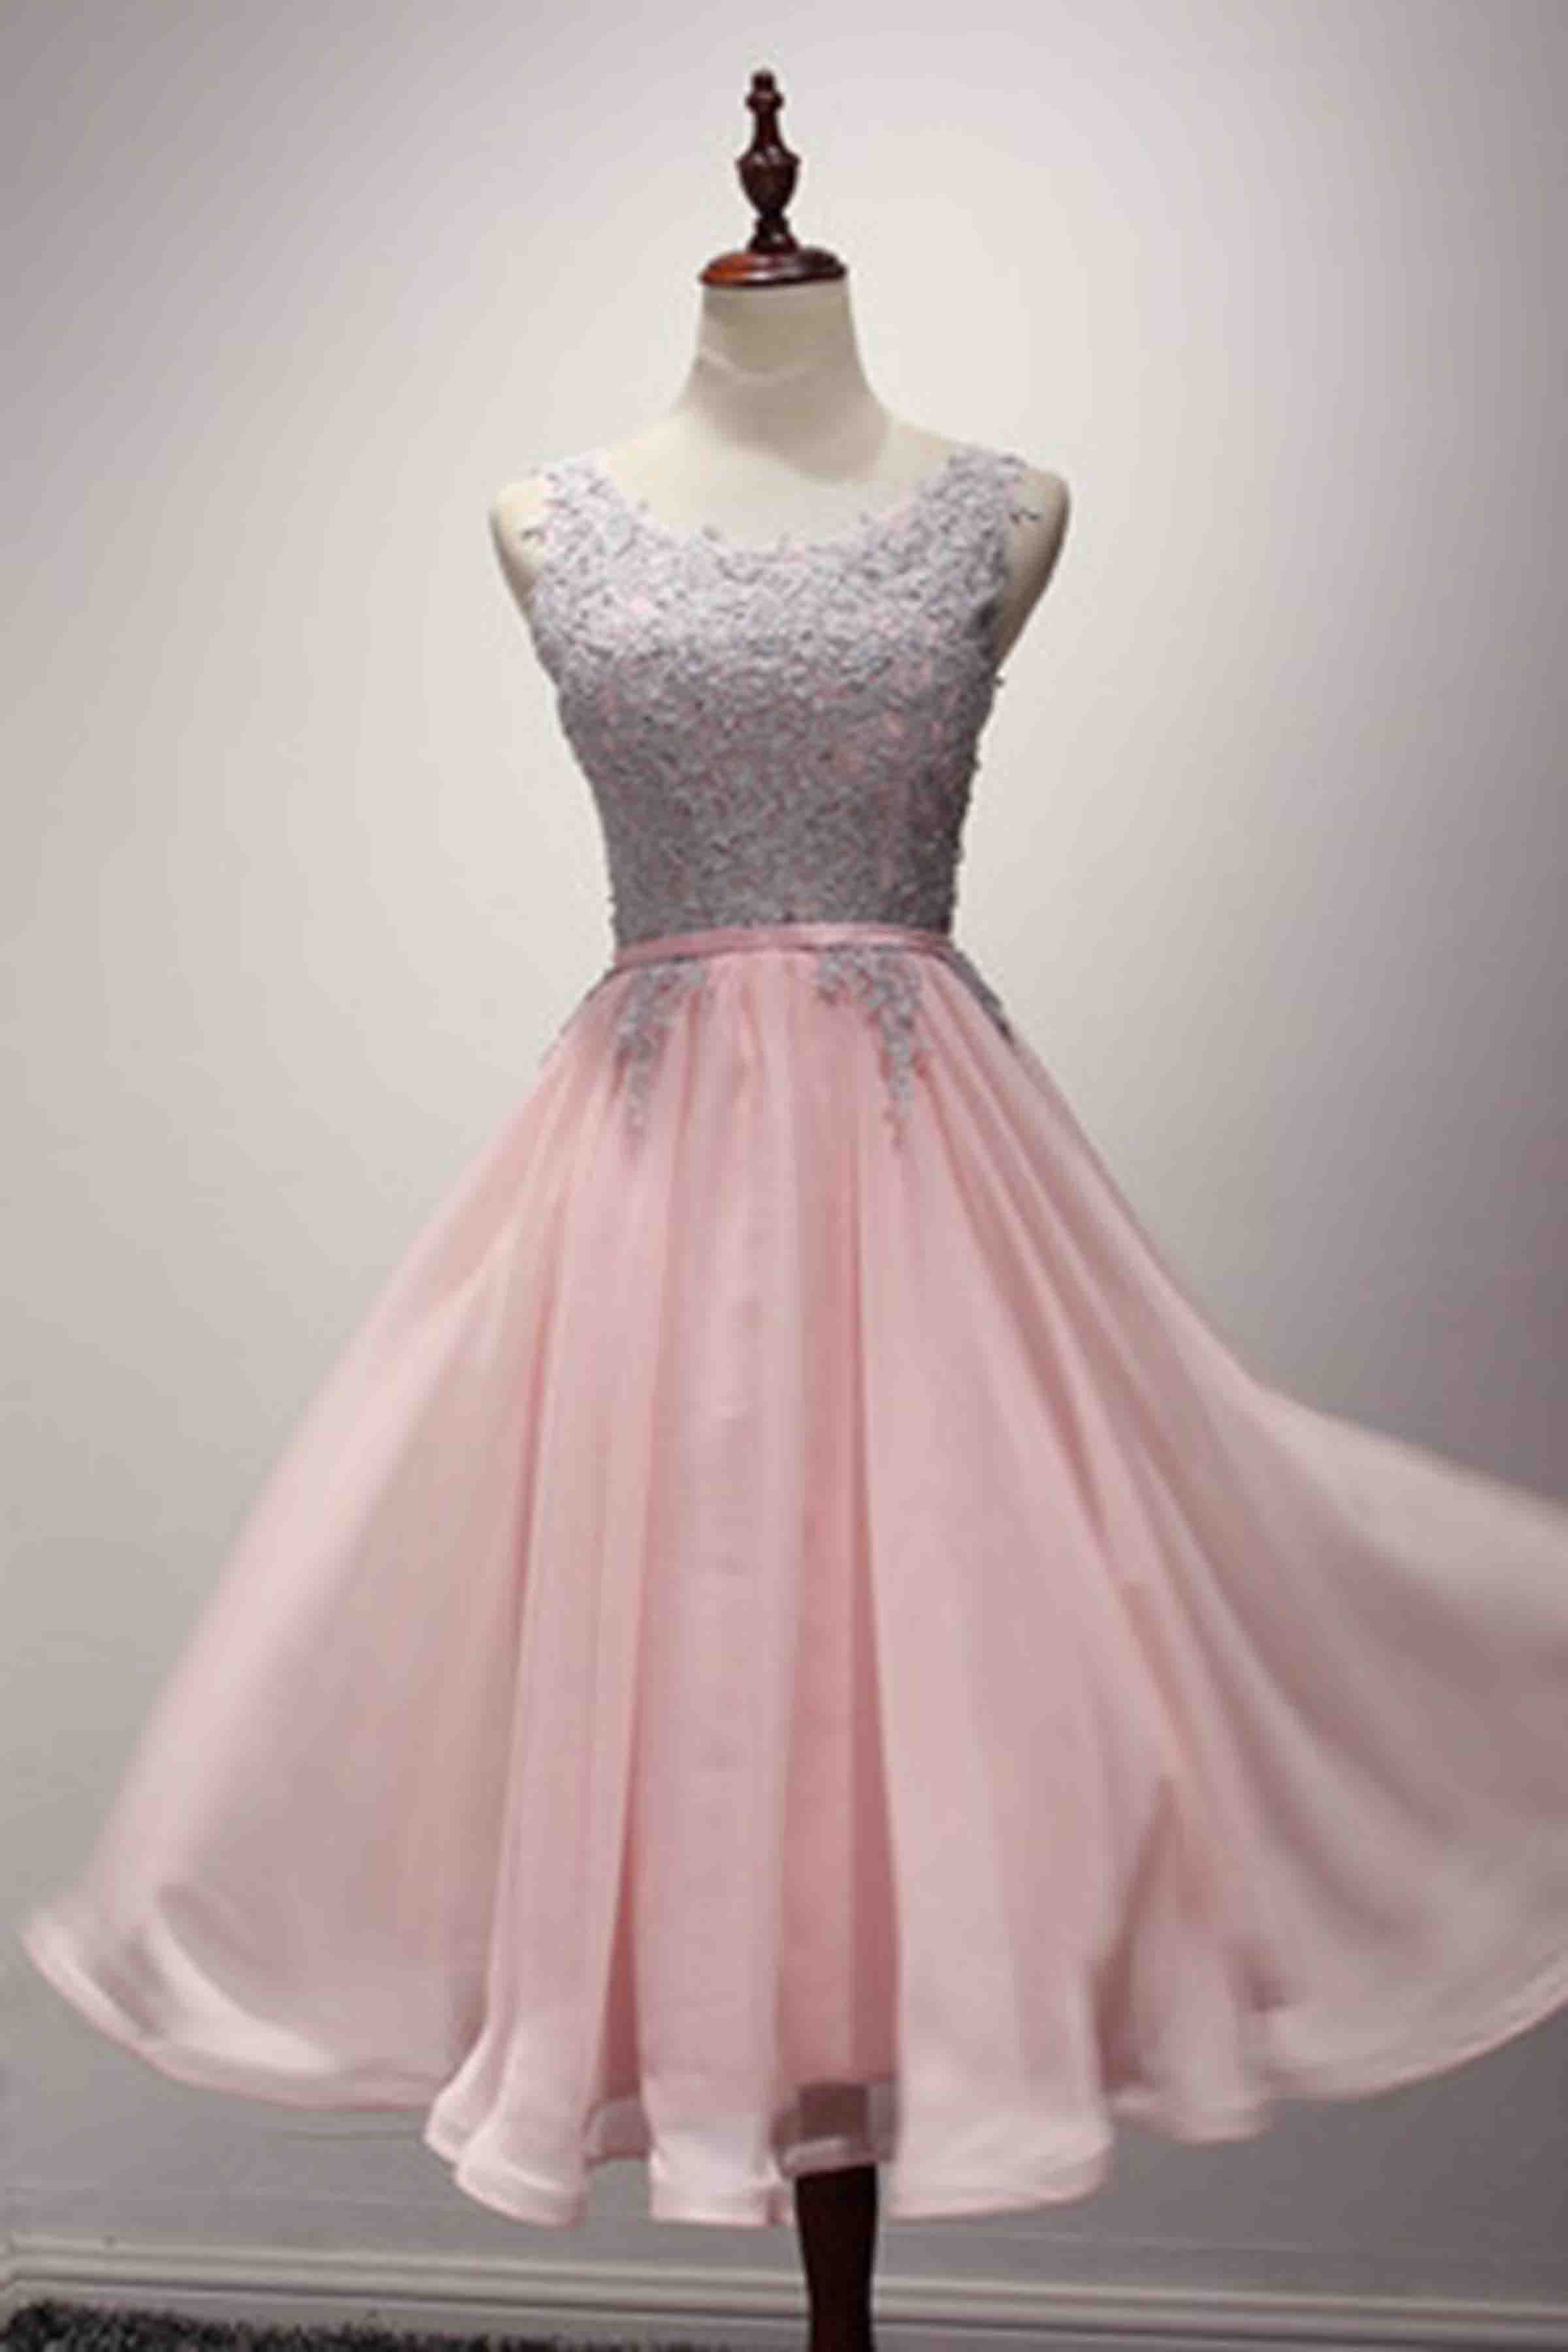 Pink chiffon lace applique simple short prom dressbridesmaid dress